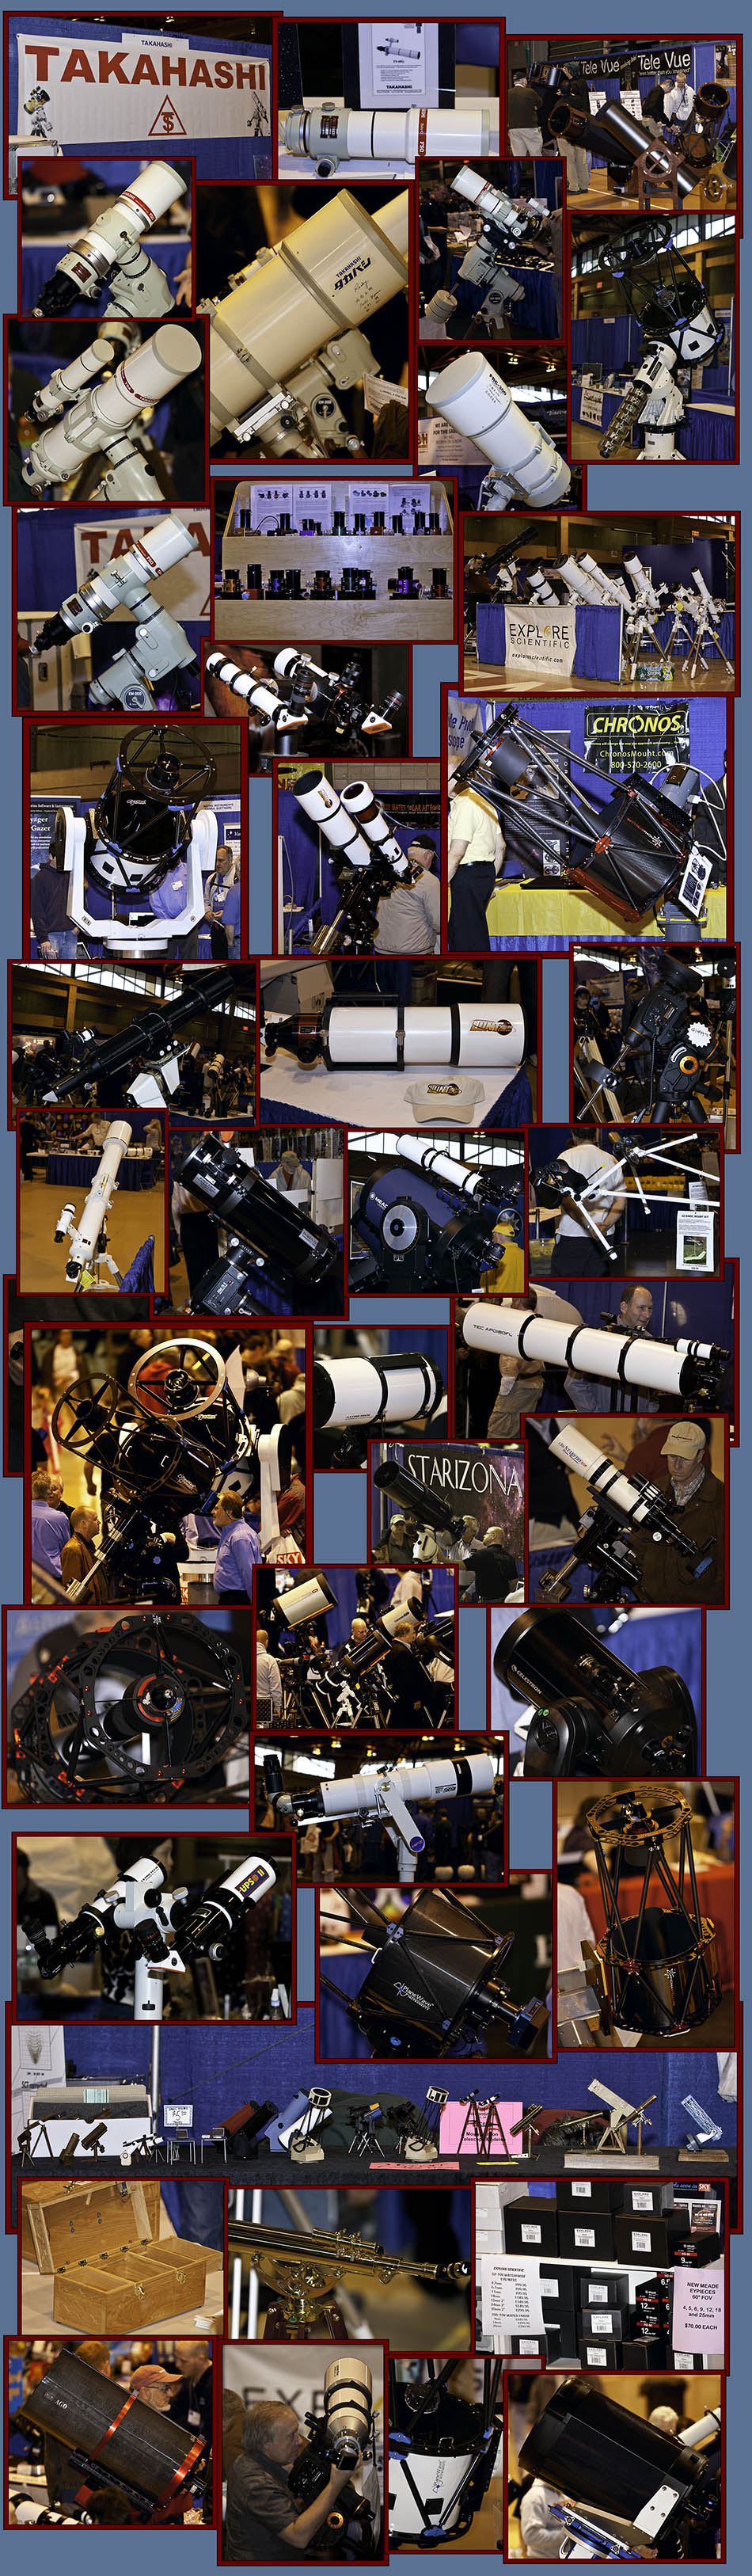 Telescopes & Equipment Displays - NEAF 2011